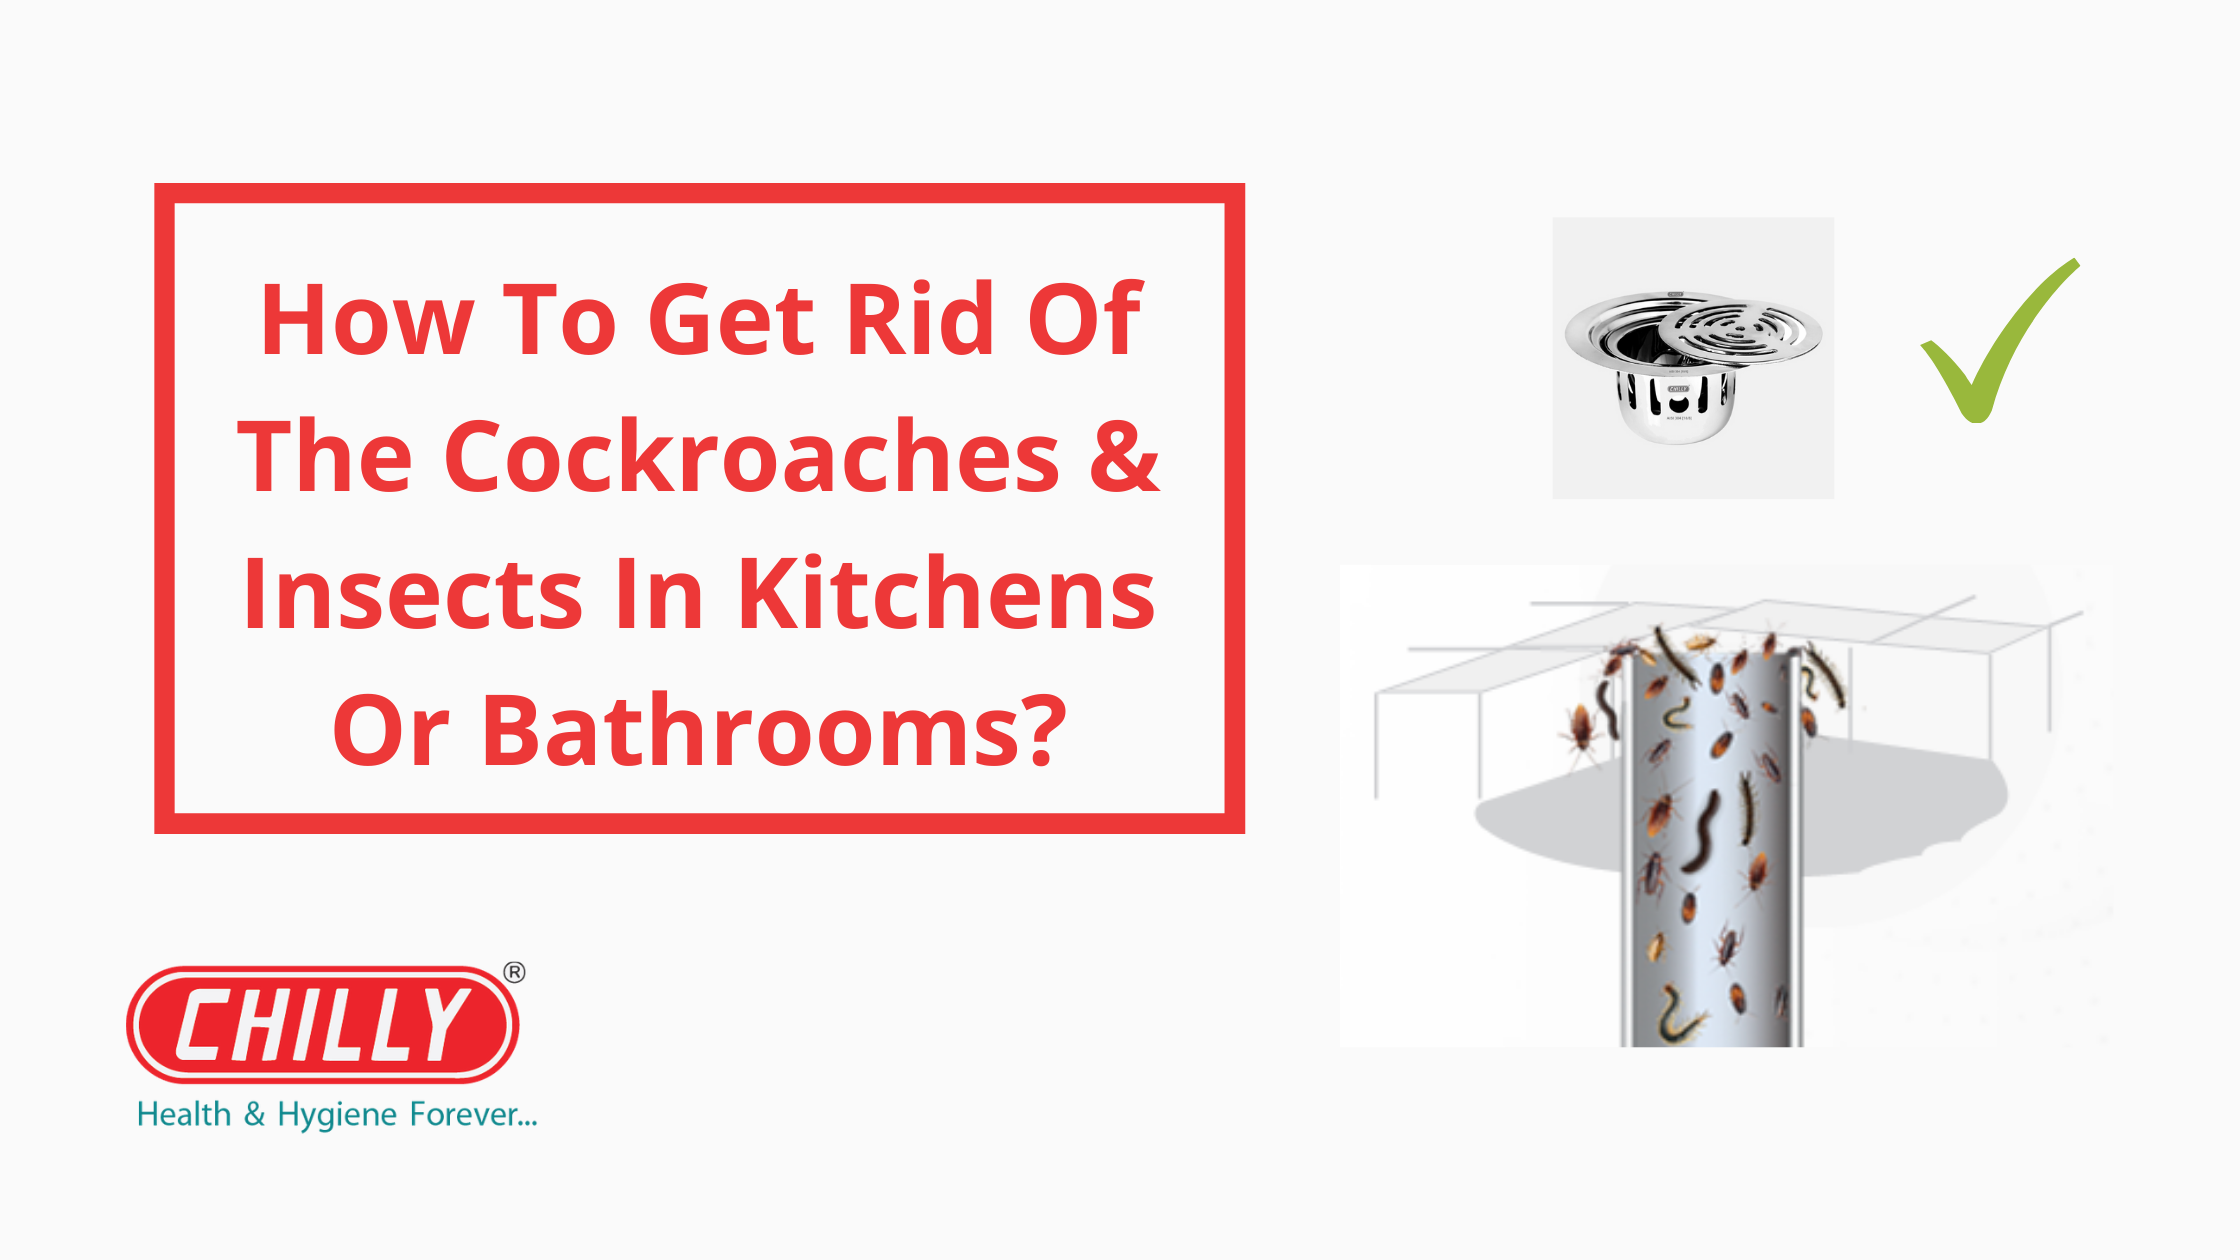 How To Get Rid Of The Cockroaches & Insects Entering Your Living Areas From The Drains In Kitchens Or Bathrooms